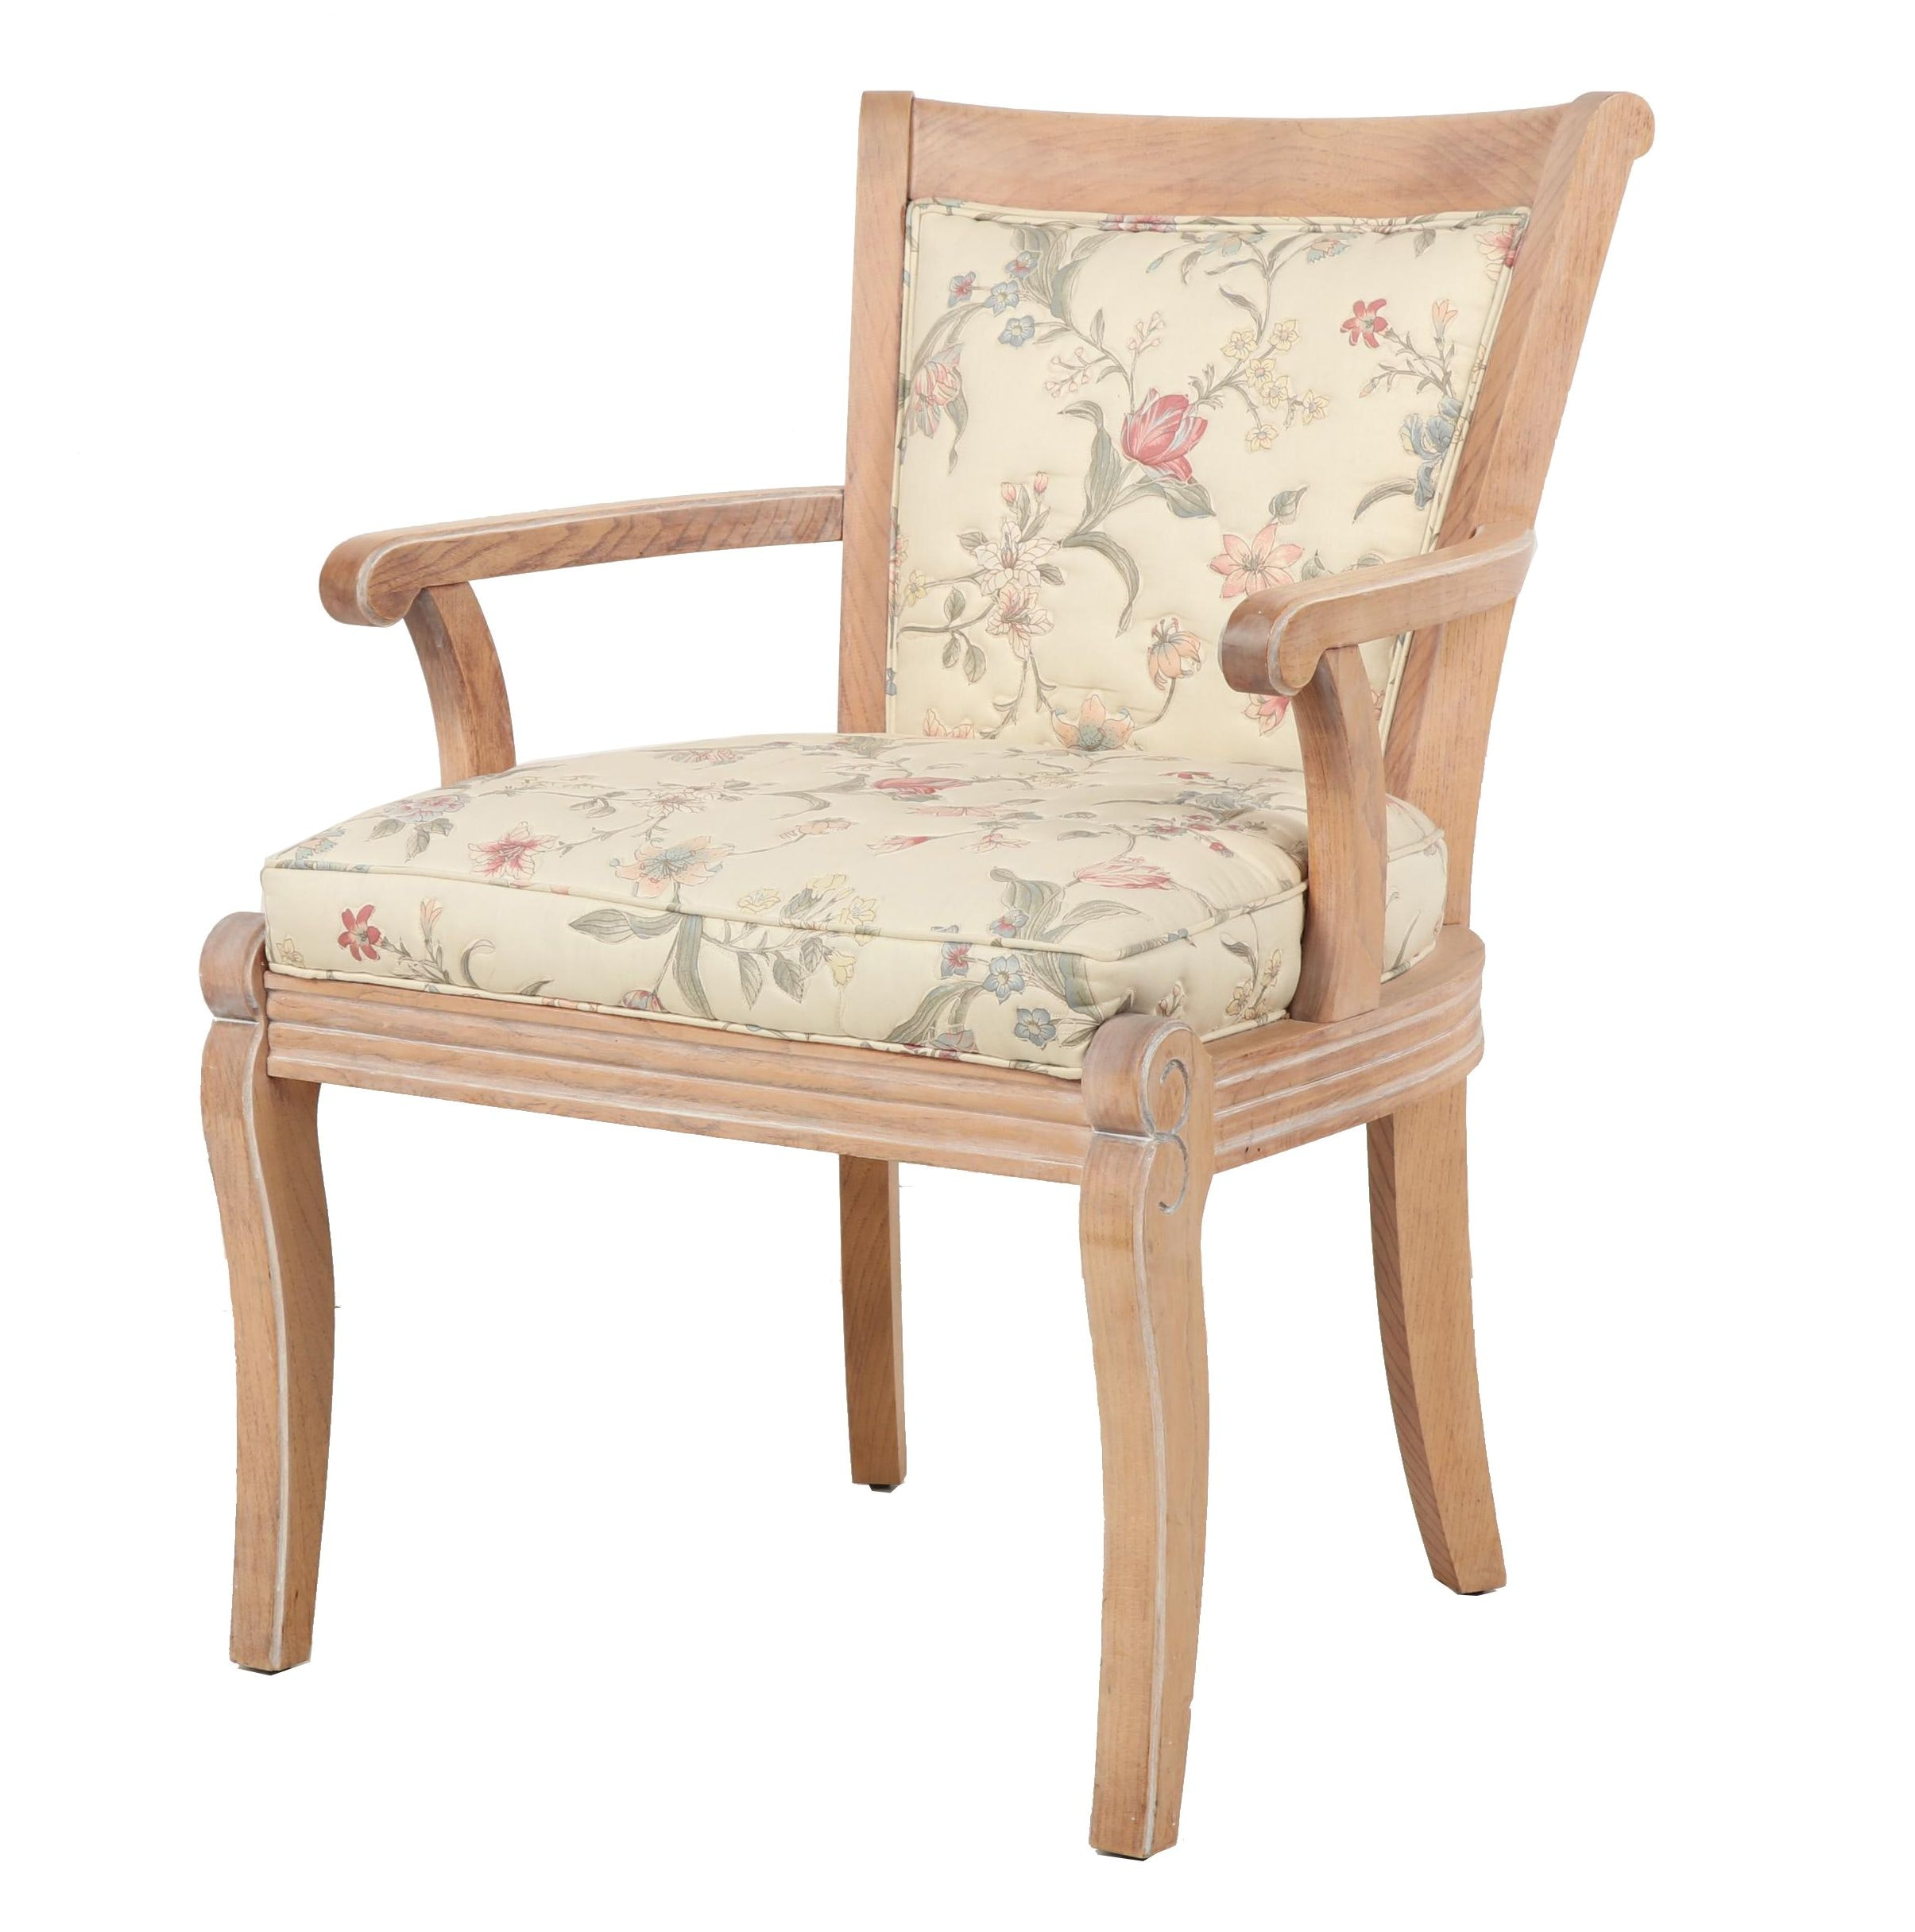 Contemporary Wooden Armchair with Floral Upholstery